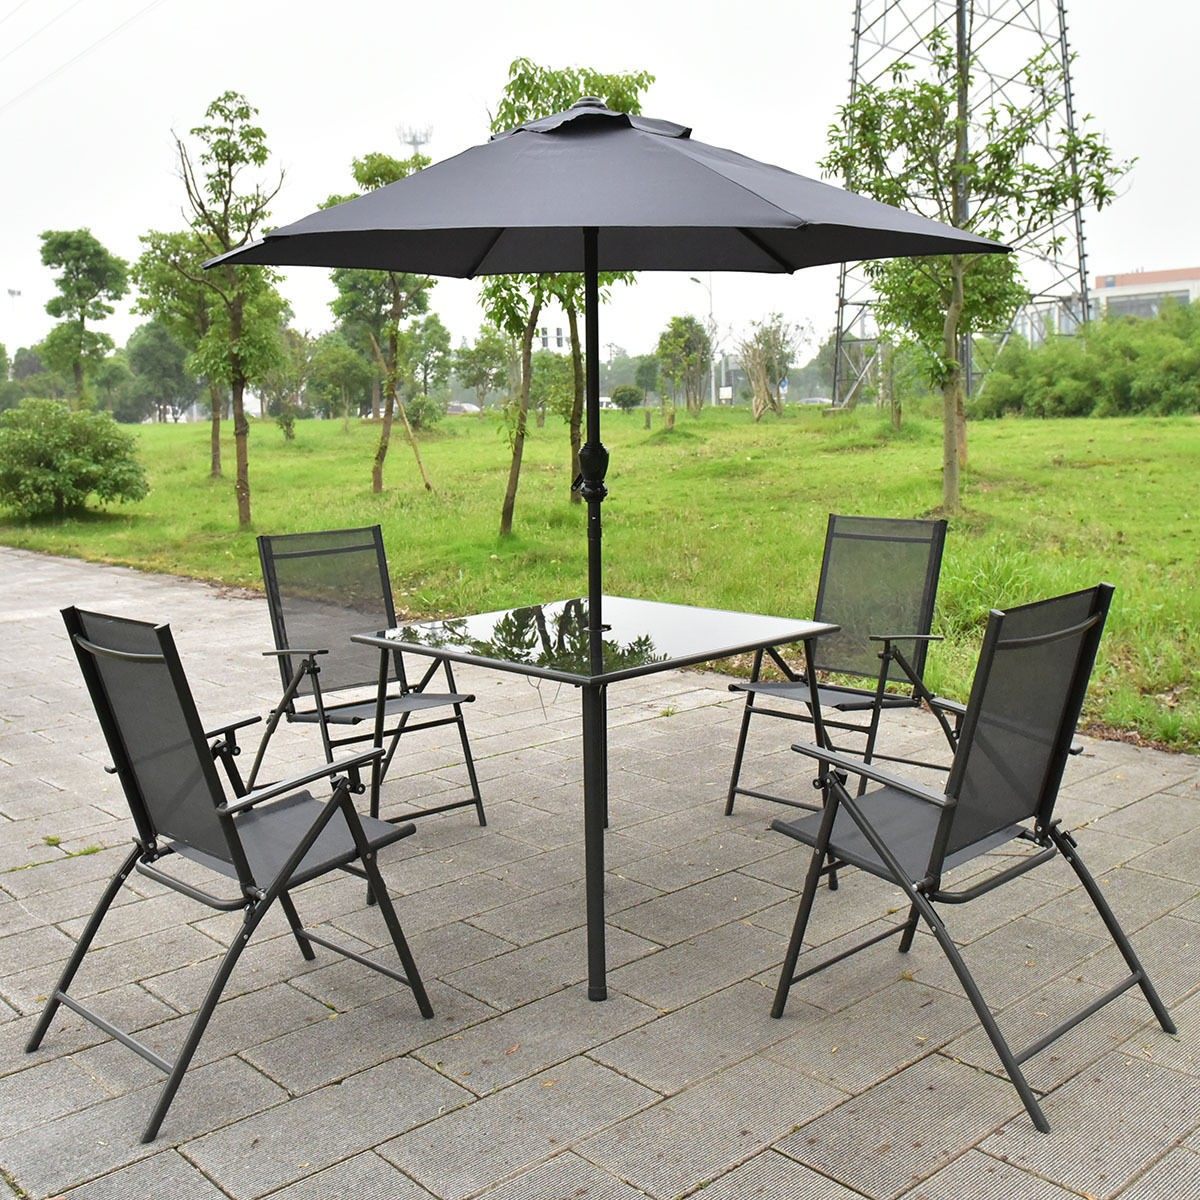 complete set 6pcs patio garden furniture 4 folding chairs table with umbrella gray